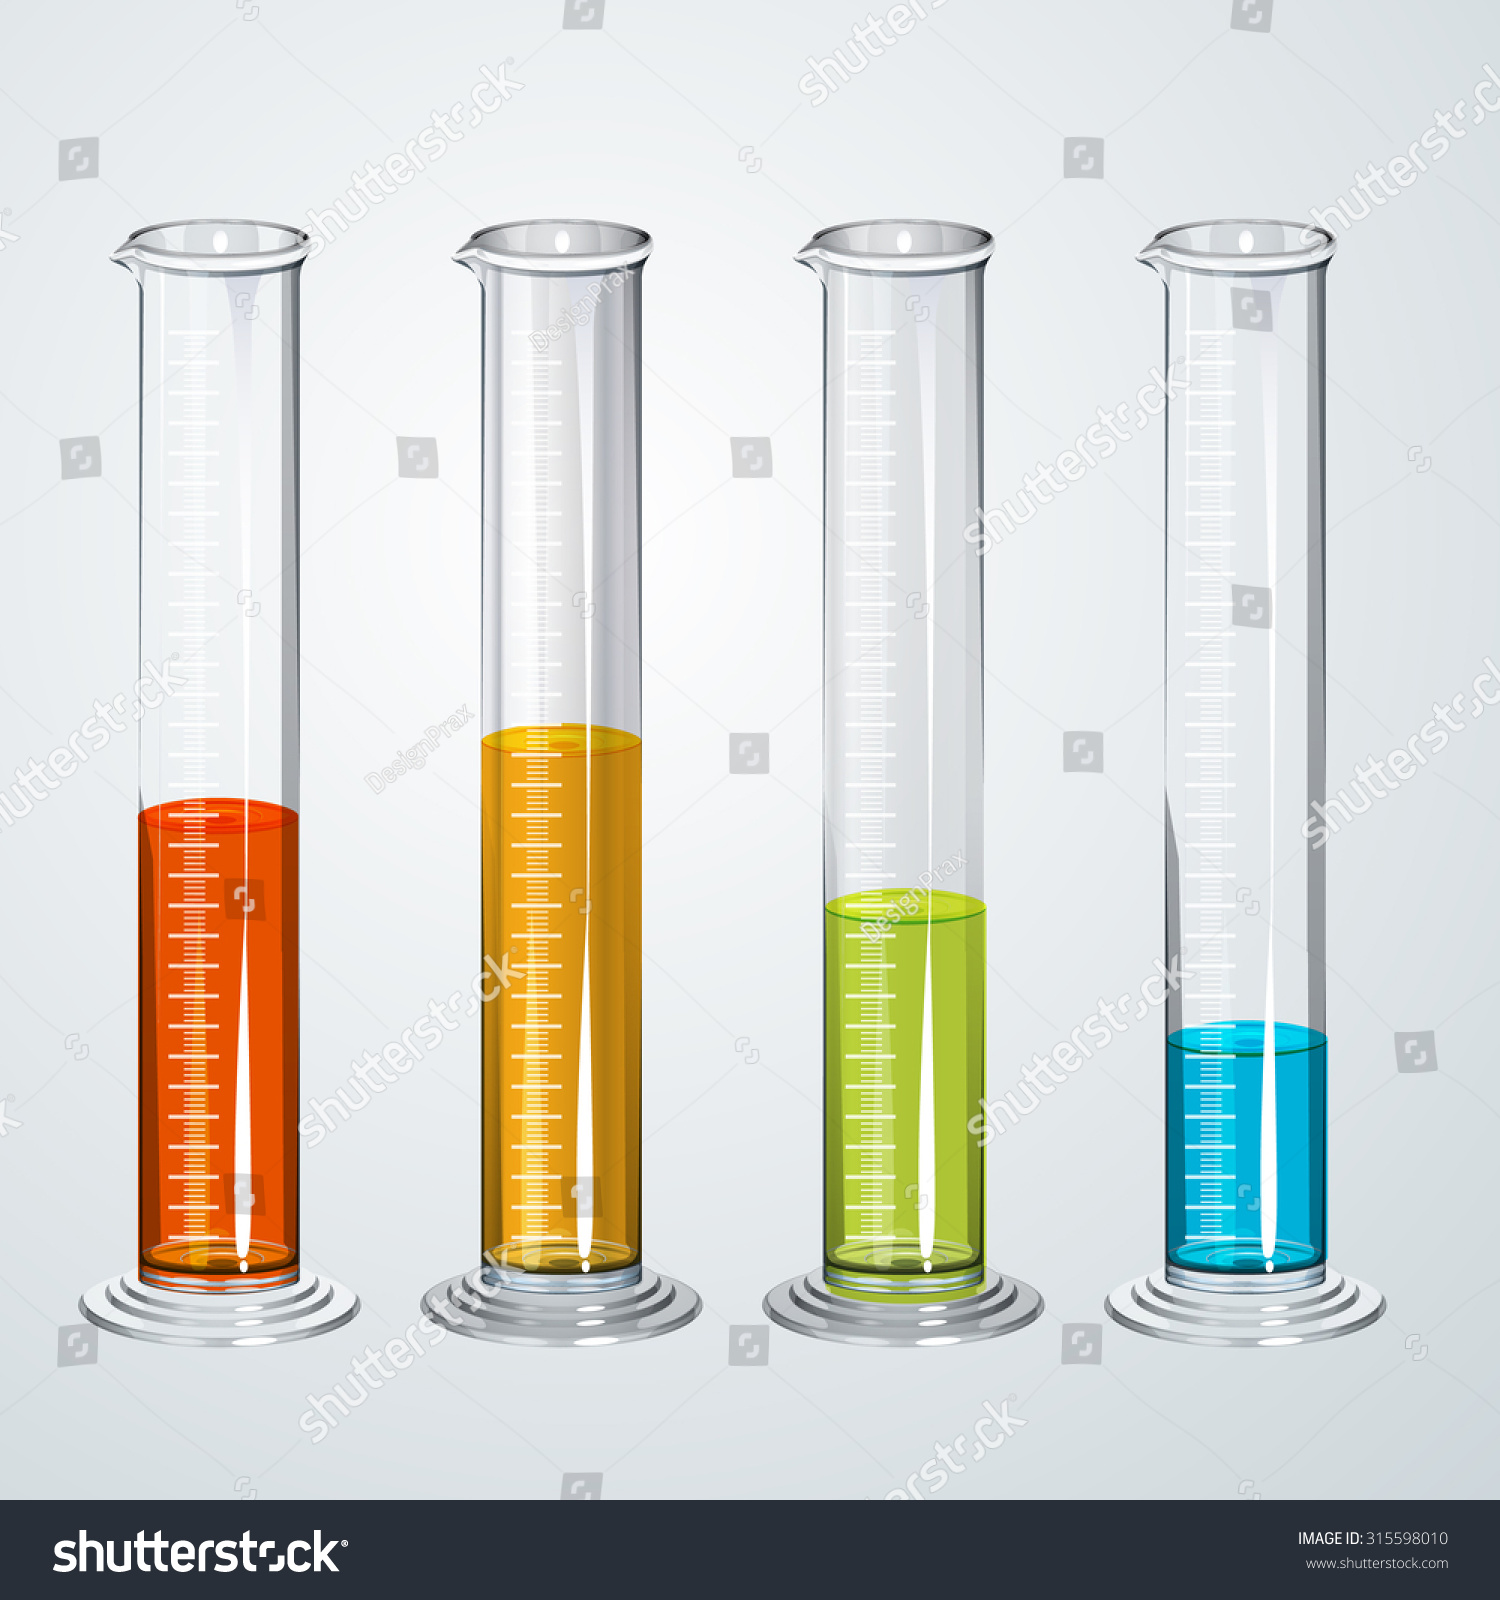 Chemistry Apparatus Graduated Cylinder Fluid Illustration Stock ... for Graduated Cylinder Laboratory Apparatus  34eri